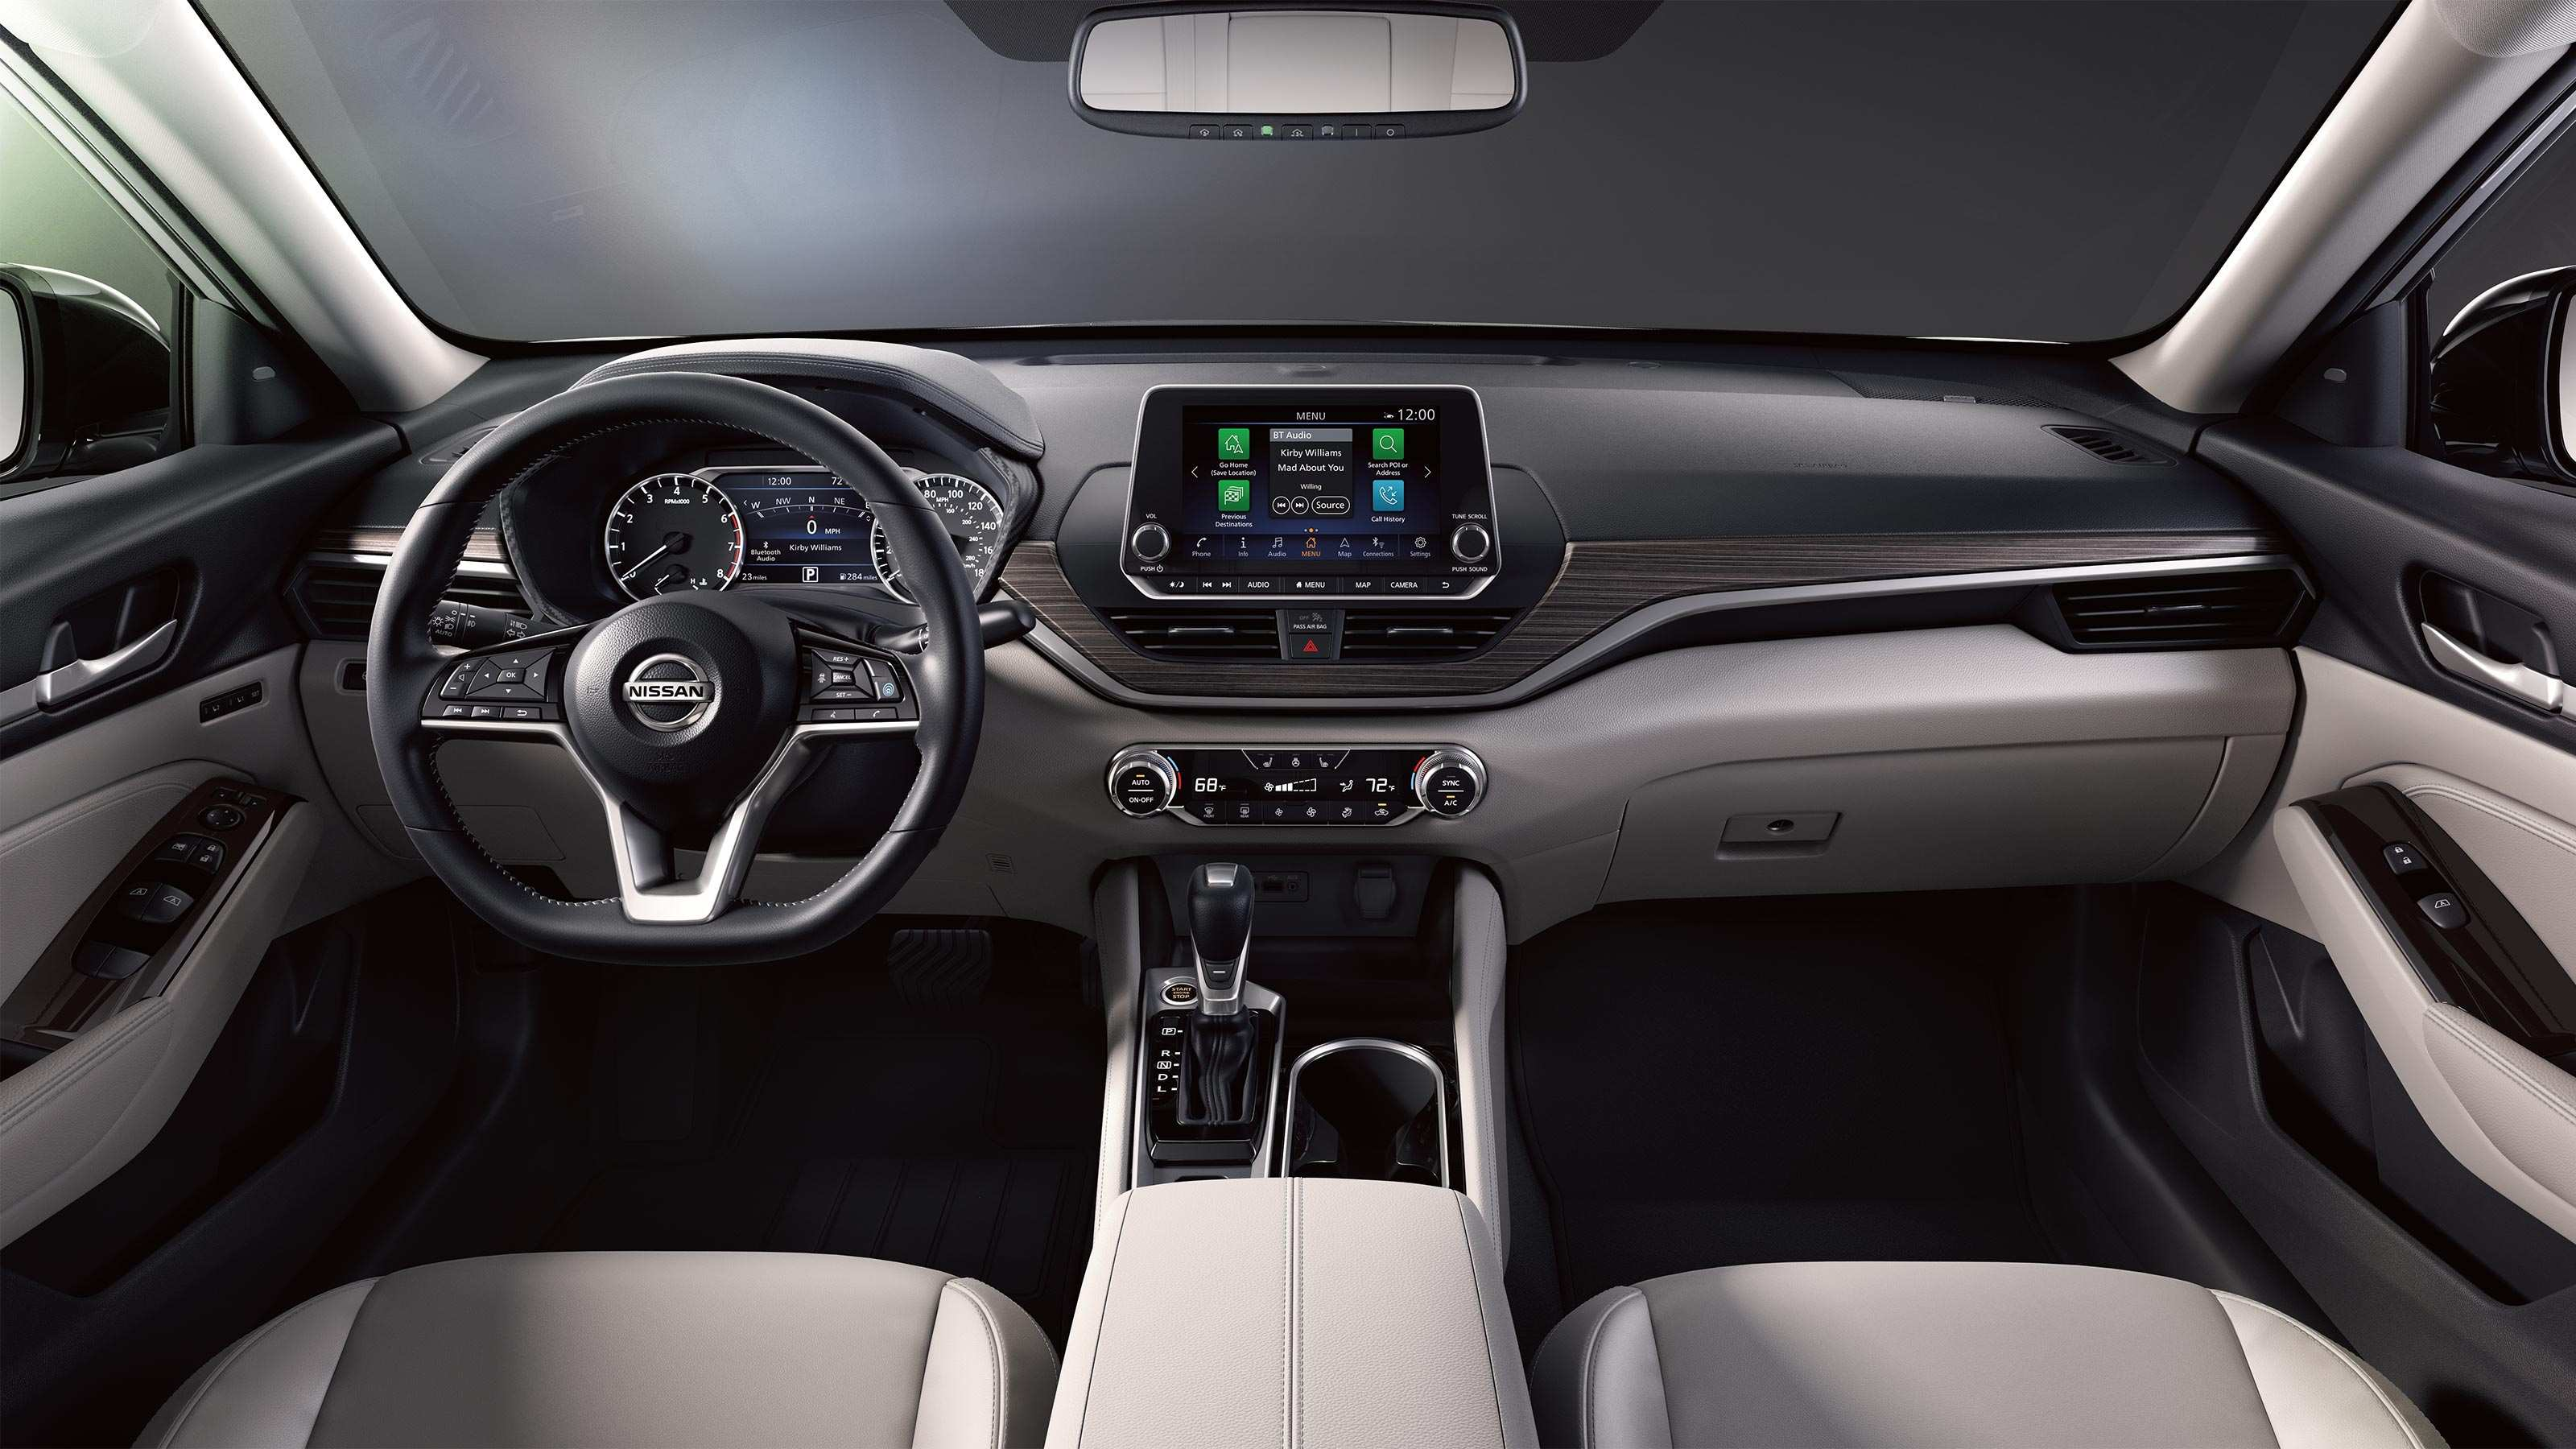 84 Best Nissan Altima Interior Wallpaper